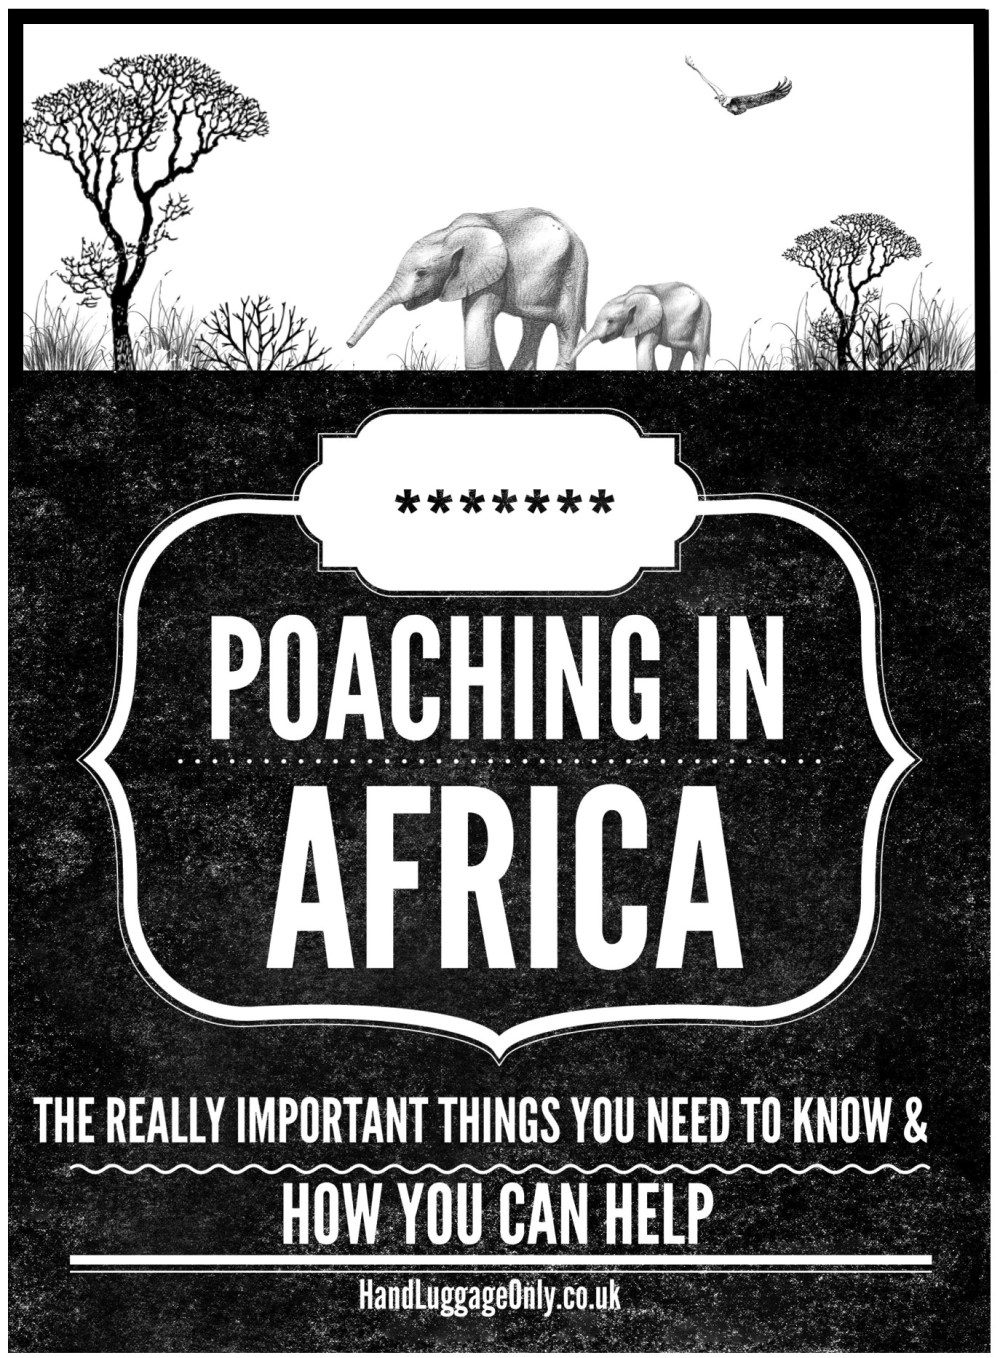 Some Really Important Things You Need To Know About Poaching In Africa (1)